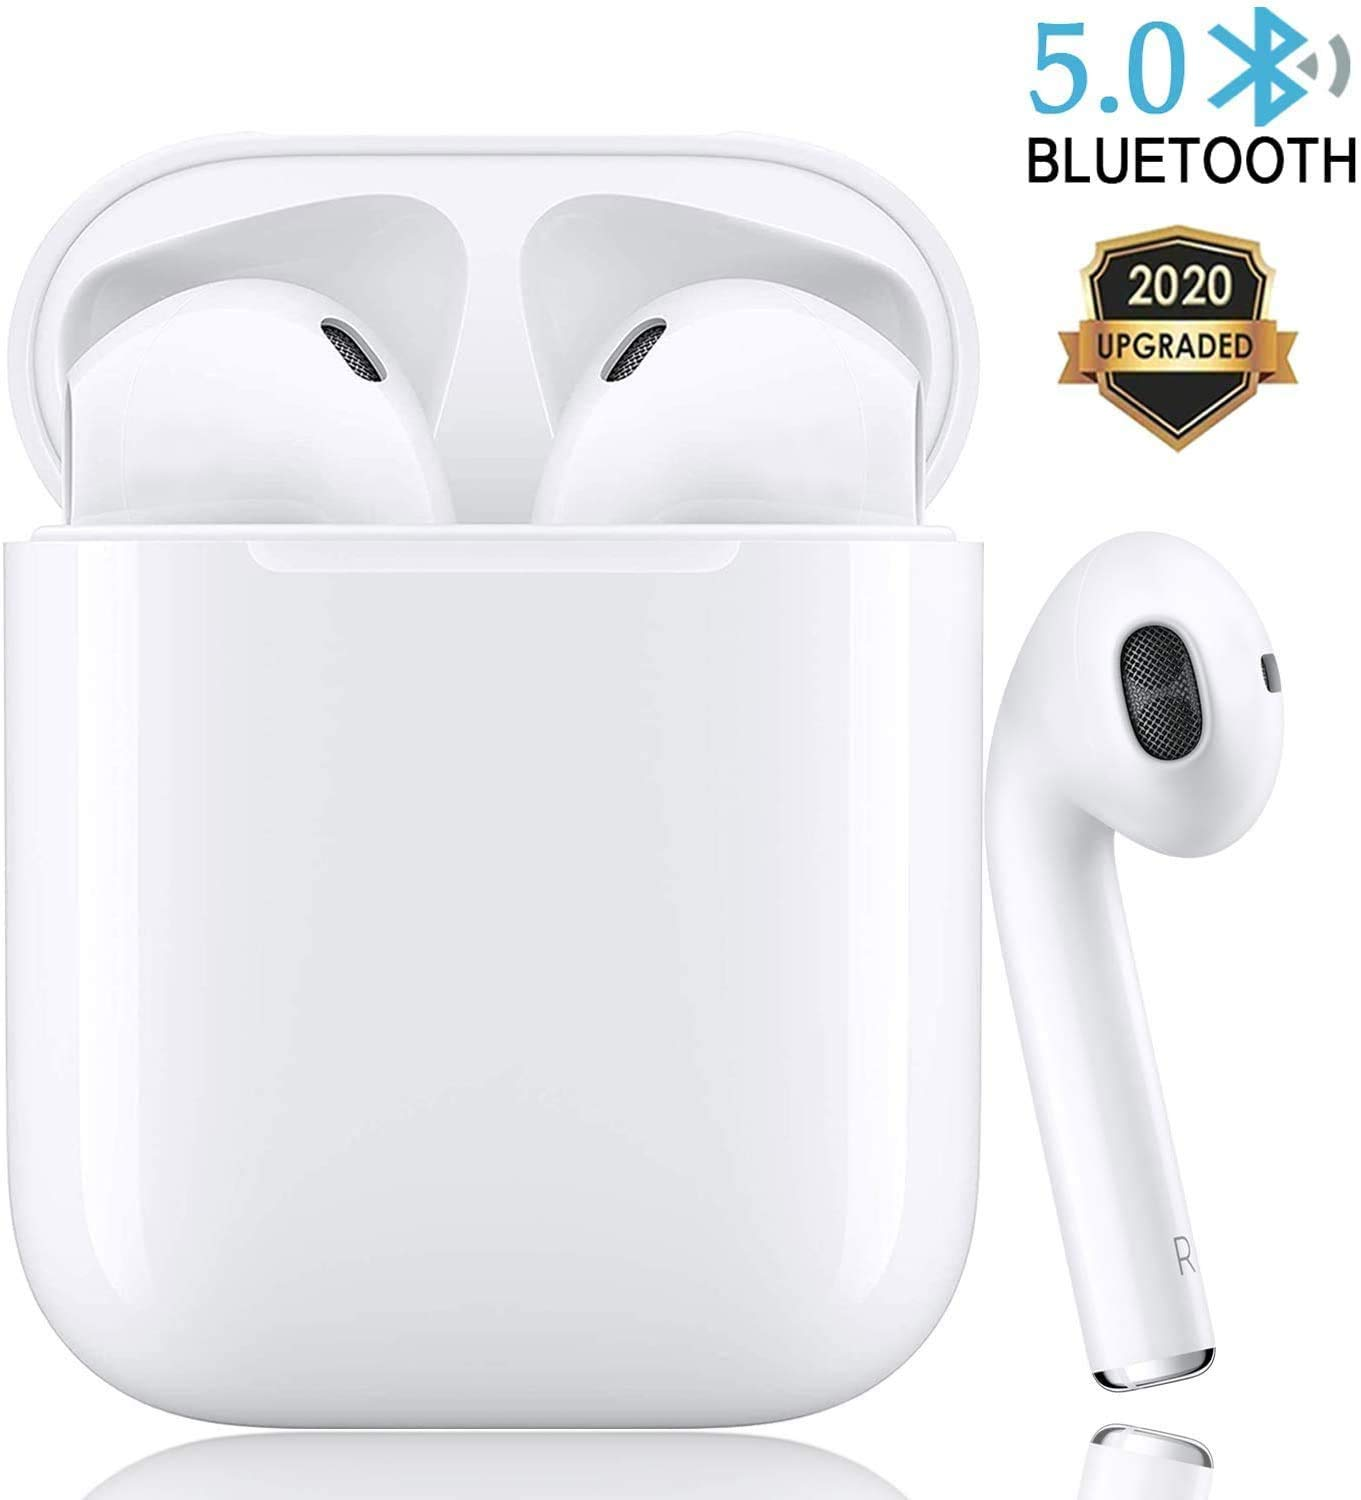 Amazon Com Bluetooth 5 0 Wireless Earbuds Headsets Bluetooth Headphones 24hrs Charging Case 3d Stereo Ipx5 Waterproof Pop Ups Auto Pairing Fast Charging For Earphone Samsung Apple Airpods Pro Airpods Airpod 2 Home Audio Theater